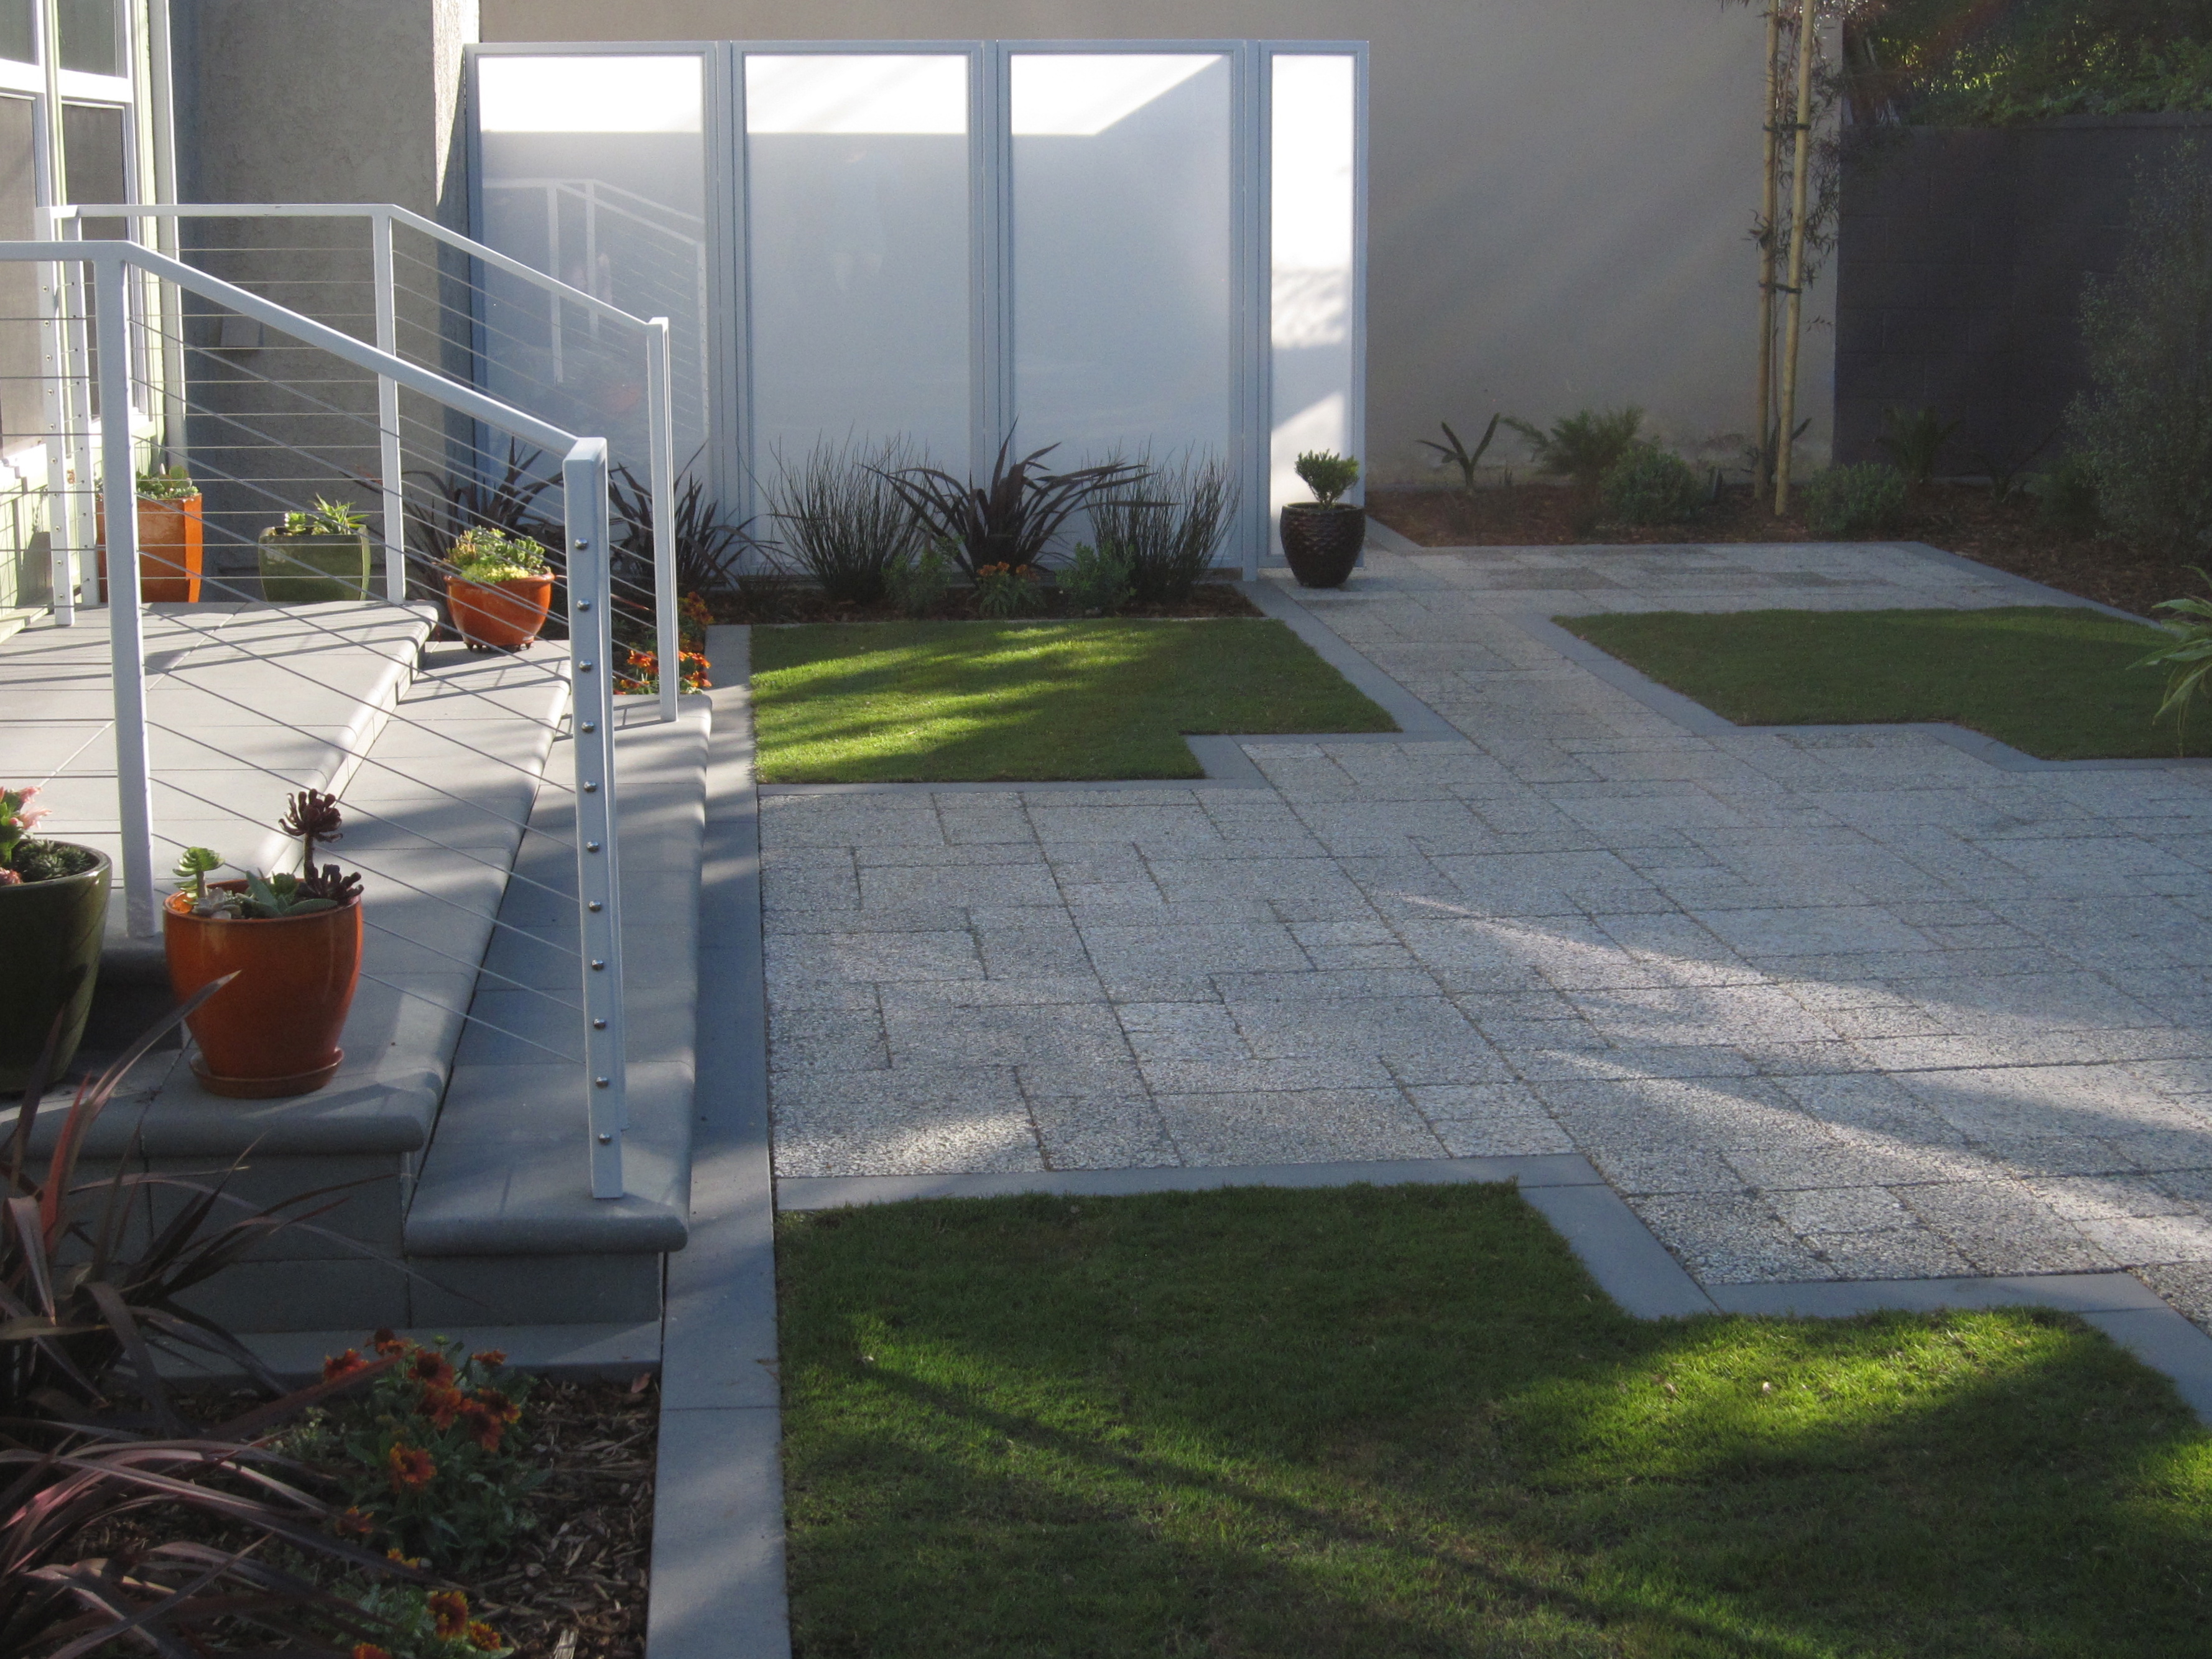 Courtyard softly illuminated at completion of planting in autumn 2012